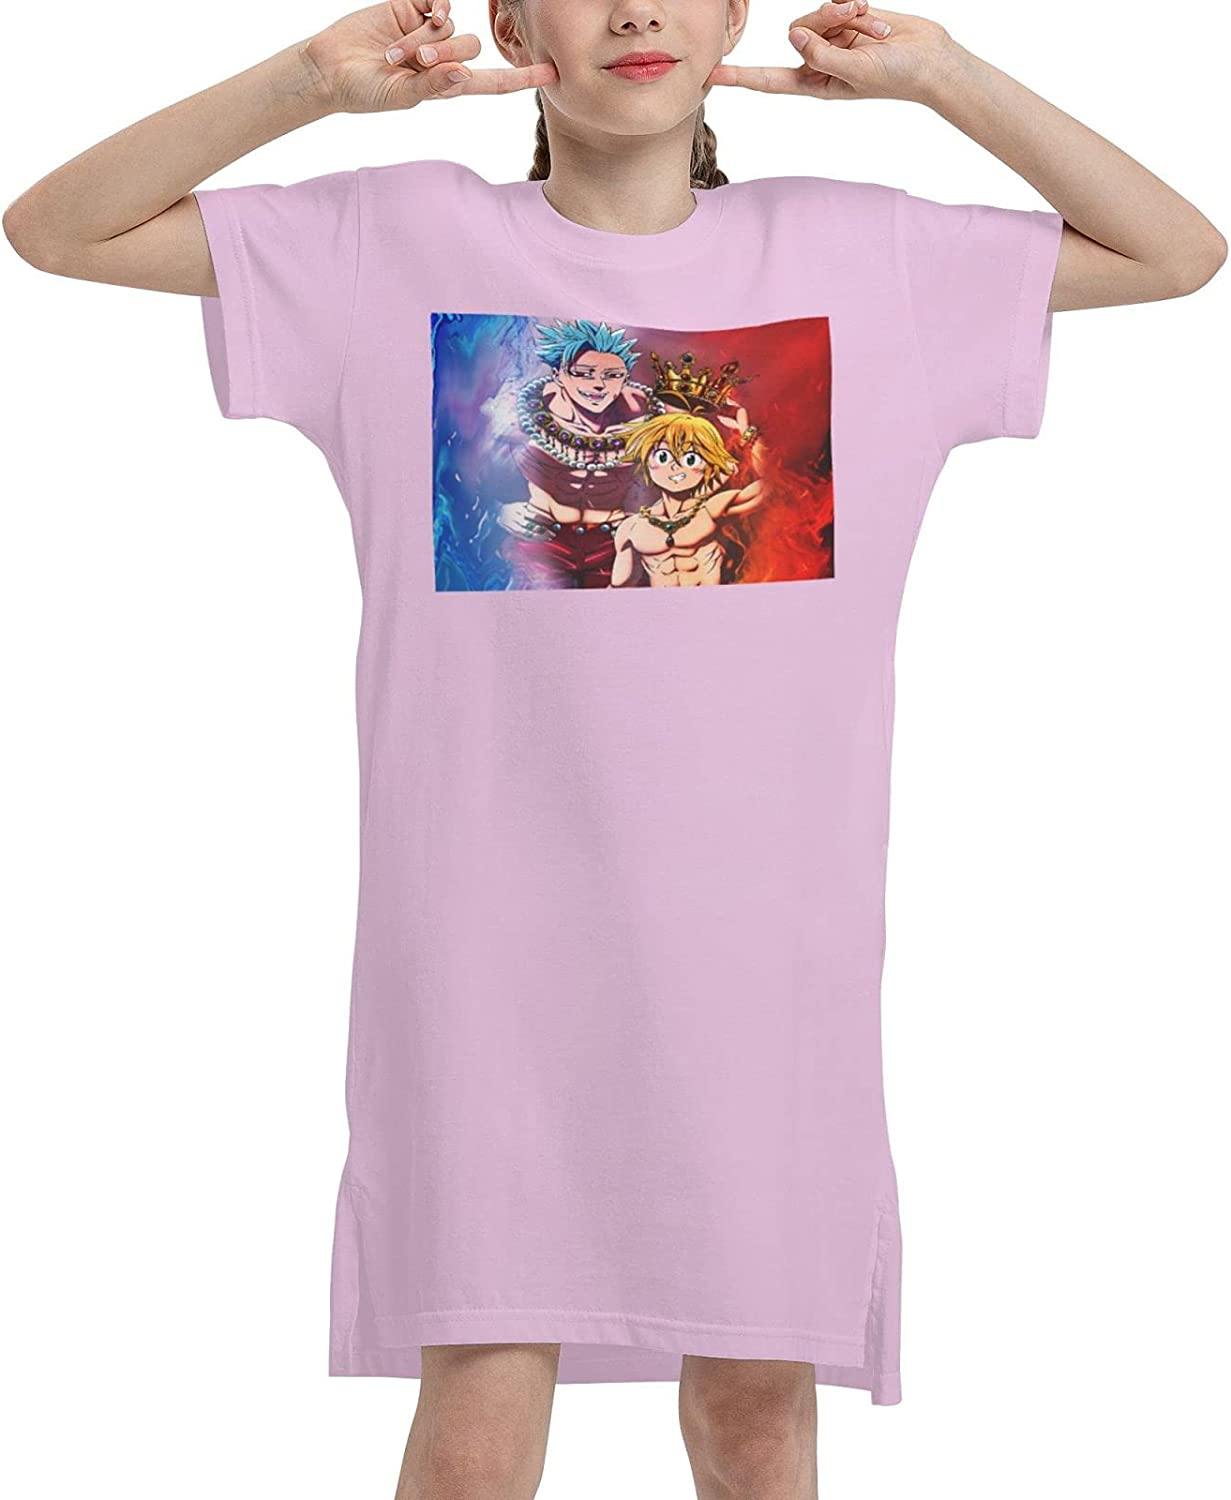 Vgfgtr The Seven Deadly Sins Girls Short Sleeve Dress Casual Swing Twirl Skirt for Holiday Theme Party 7-12 Years